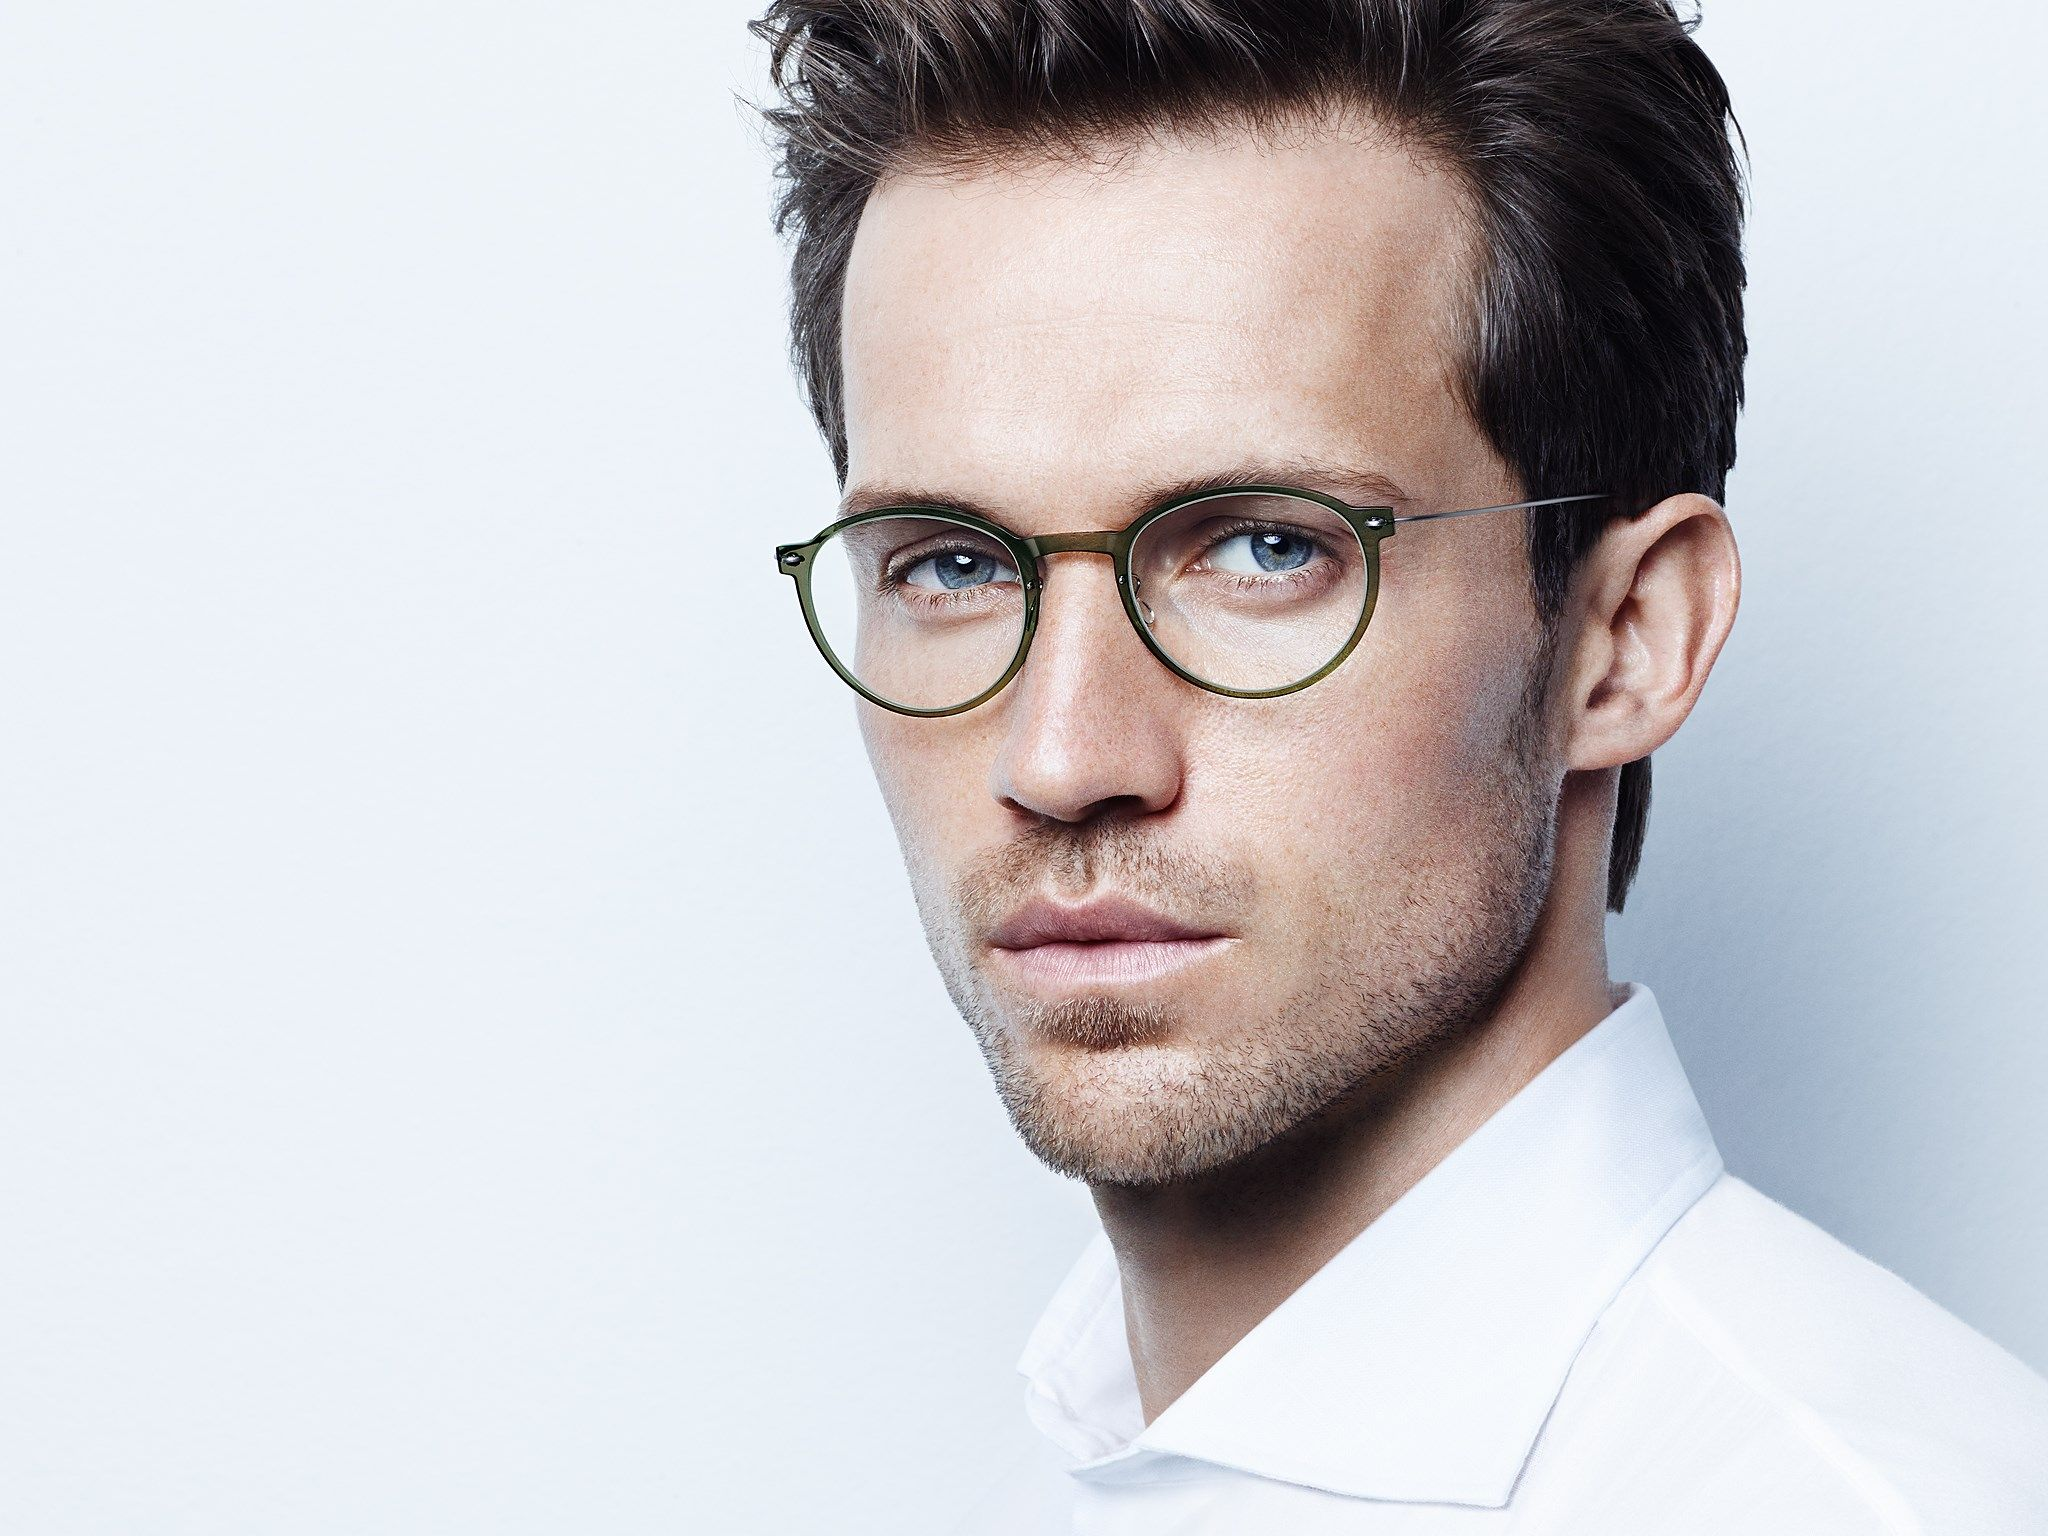 bb49e4989f LINDBERG n.o.w. - Men. LINDBERG n.o.w. - Men Mens Glasses ...